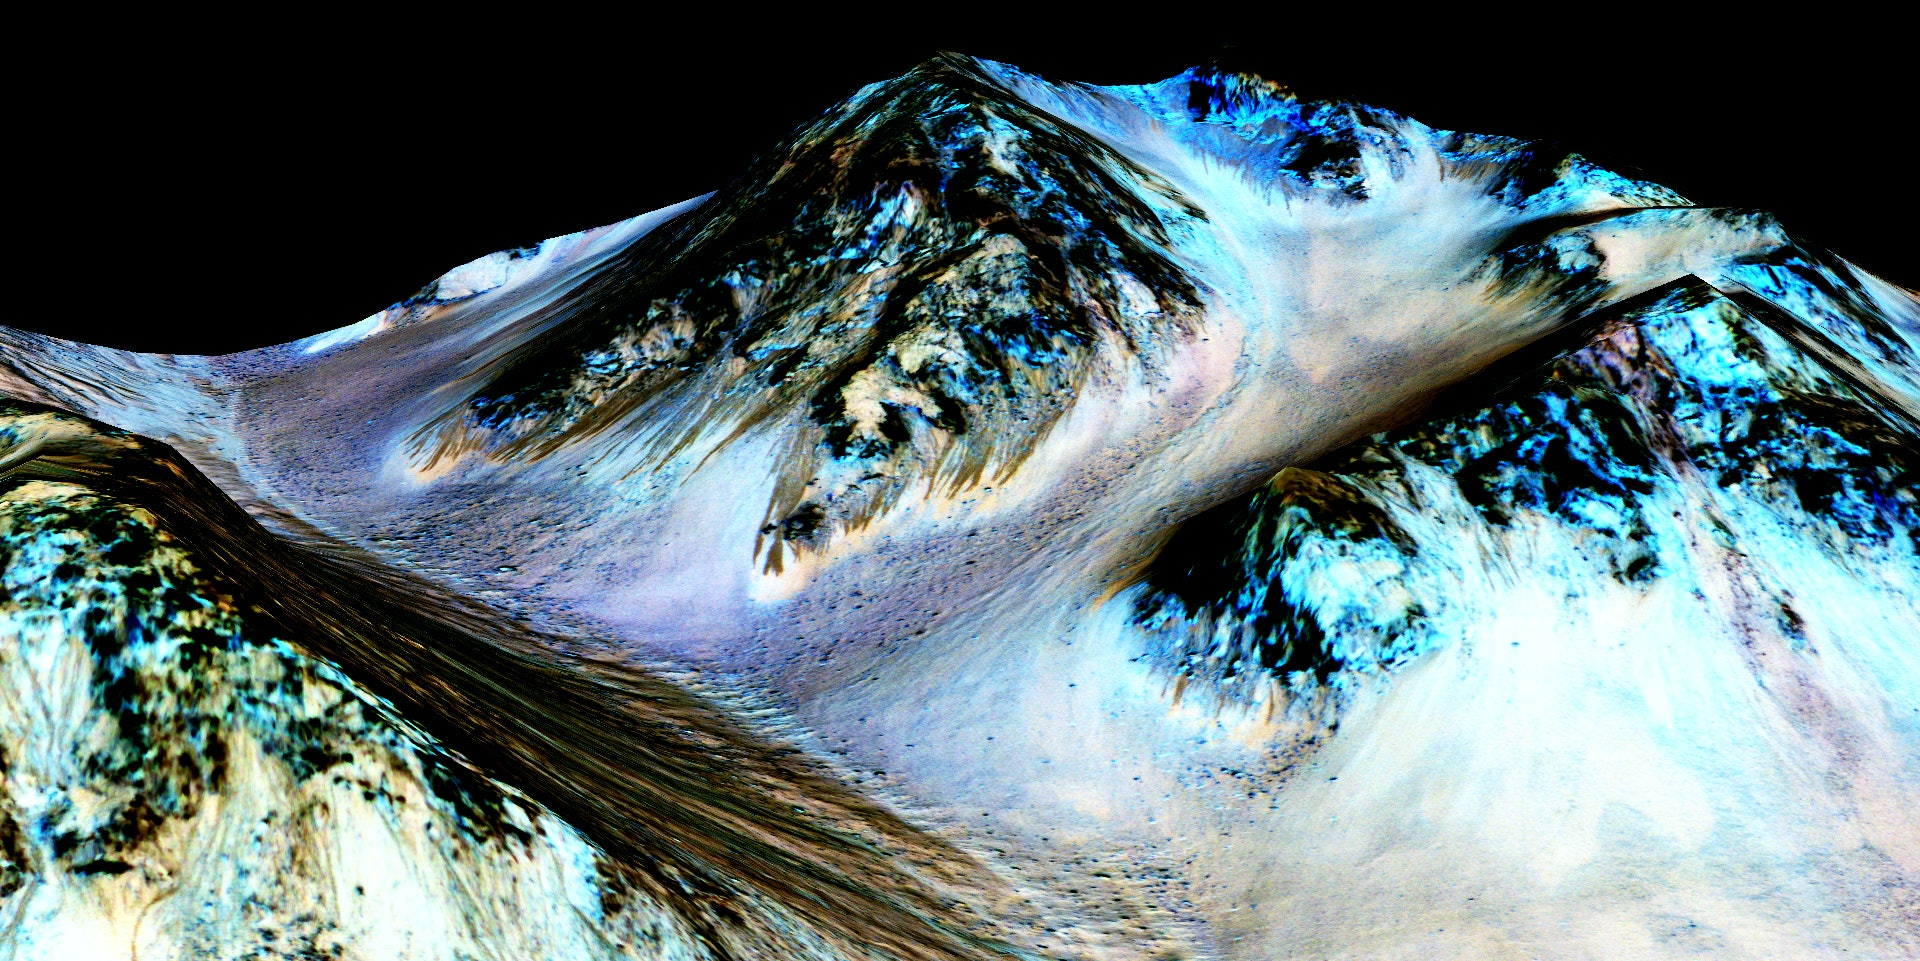 Methane Bursts Could Have Helped Spark Ancient Alien Life on Mars